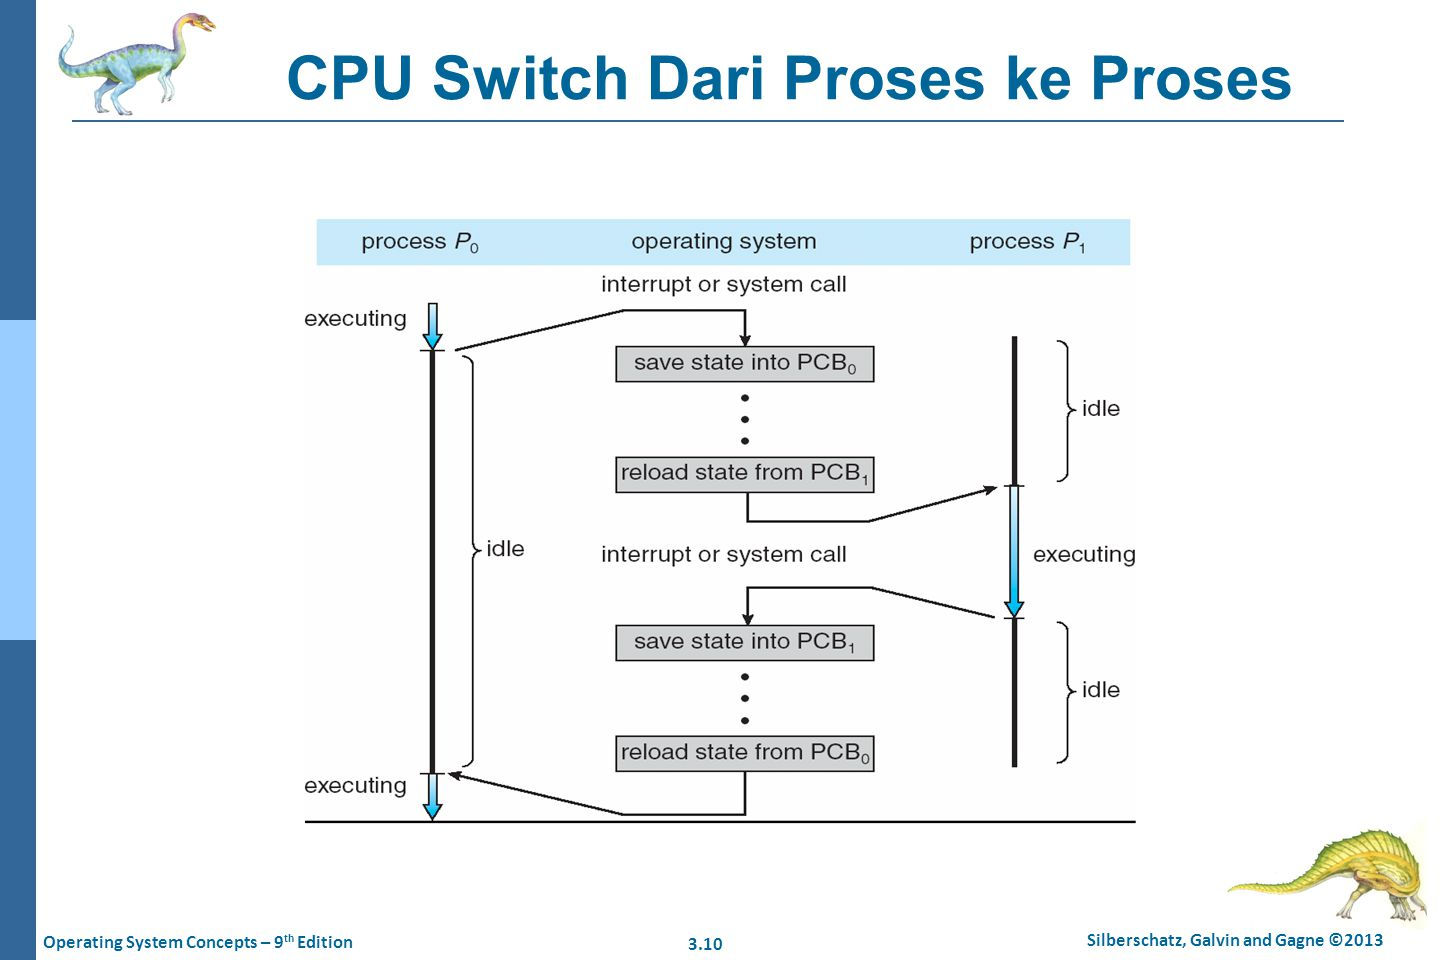 3.10 Silberschatz, Galvin and Gagne ©2013 Operating System Concepts – 9 th Edition CPU Switch Dari Proses ke Proses